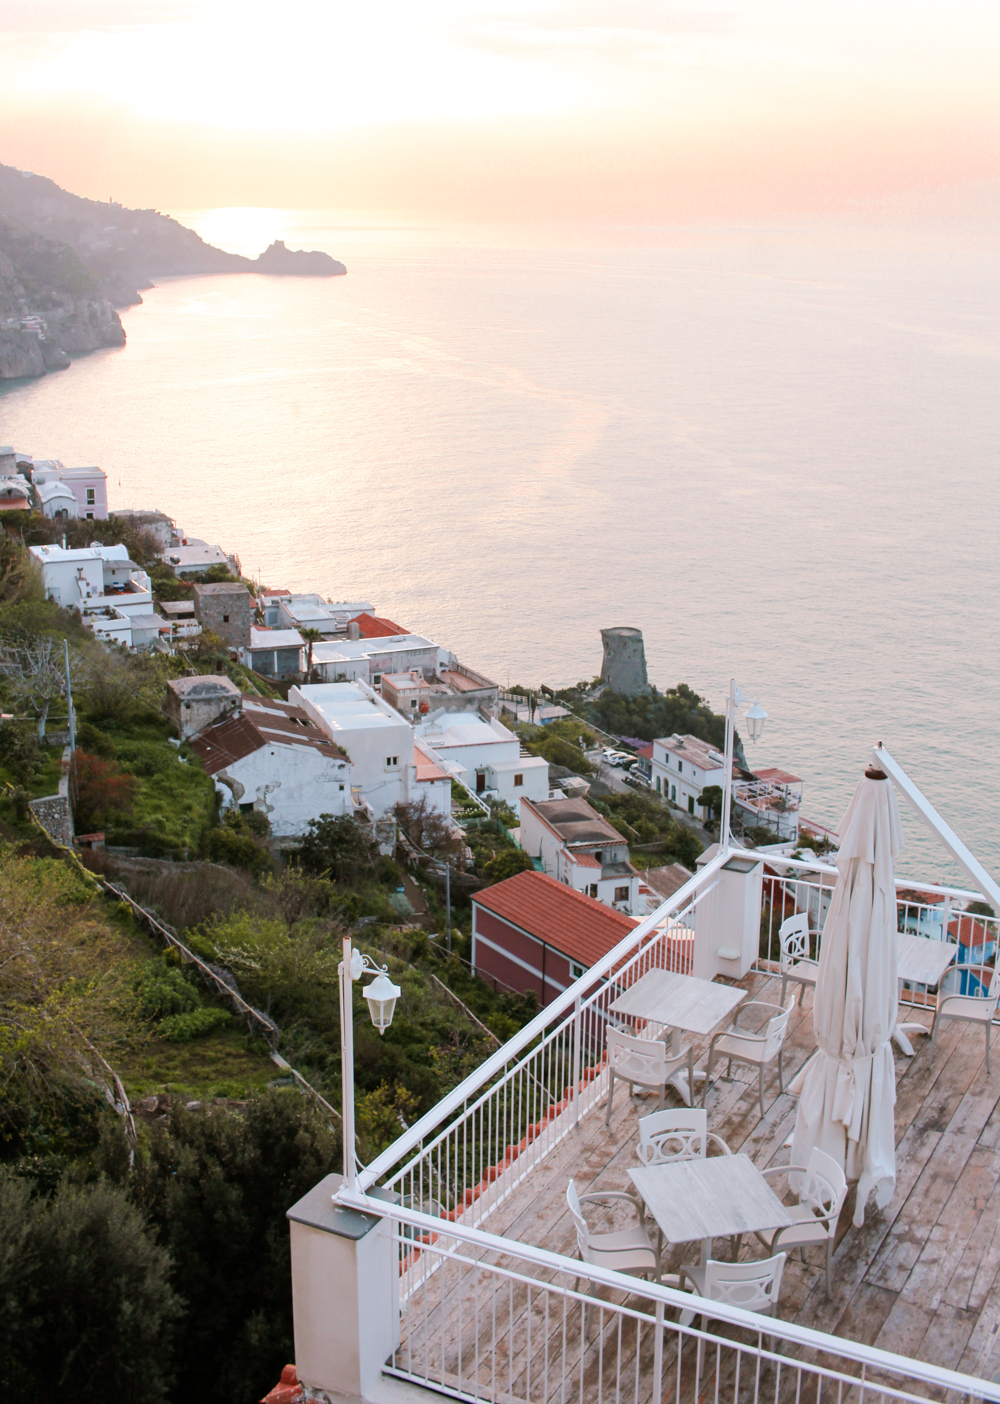 Where to stay in Praiano Amalfi Coast